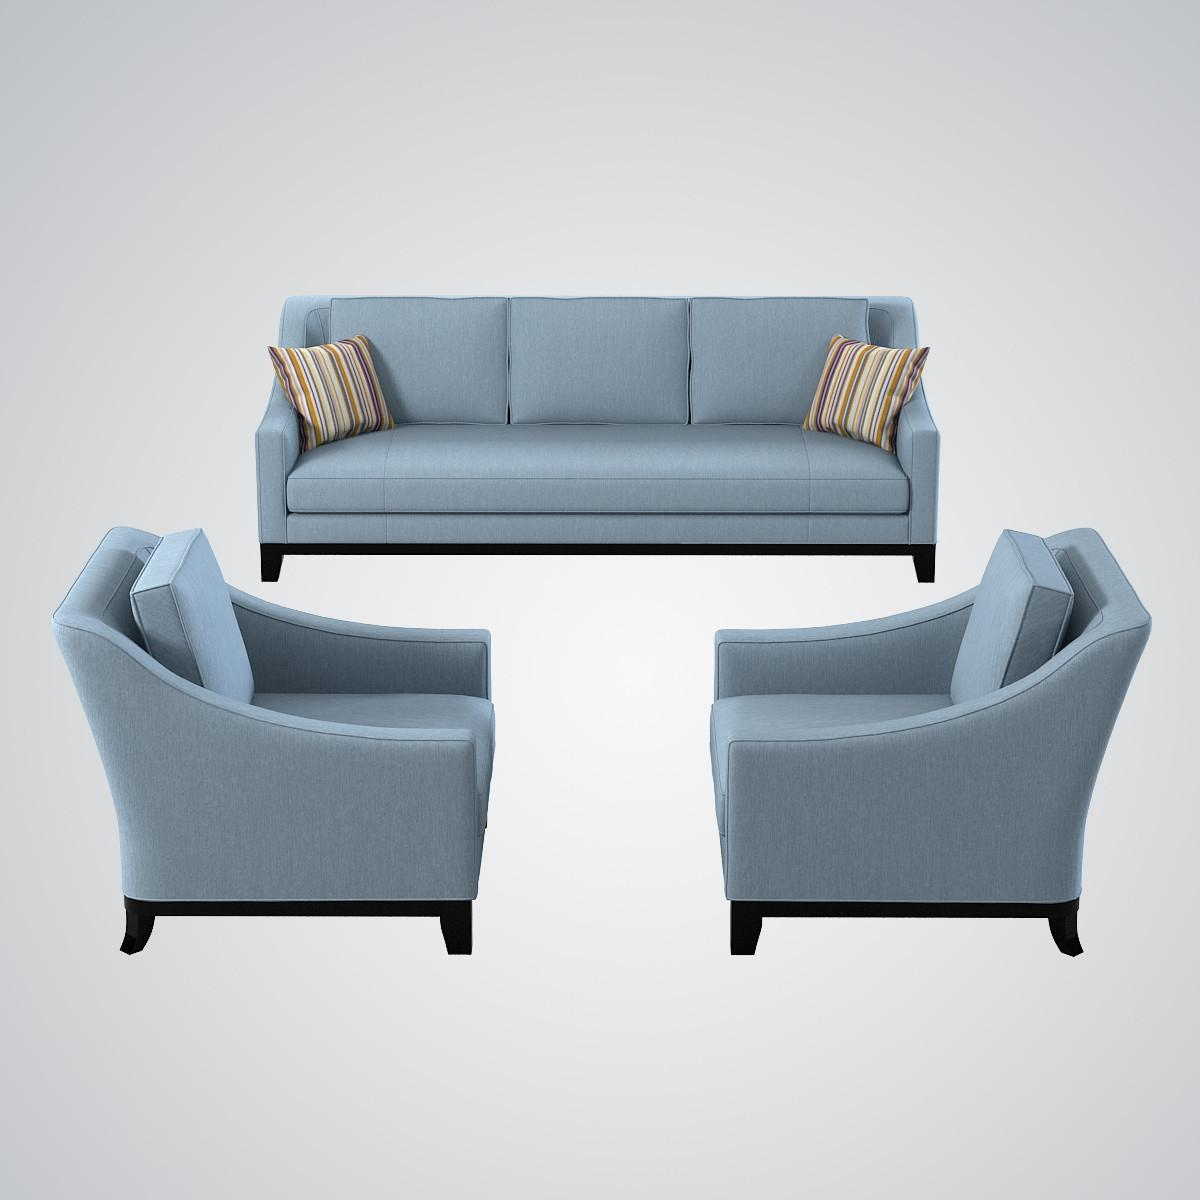 Model Baker Neue Sofa Chair Throughout Sofa And Chair Set (View 12 of 20)